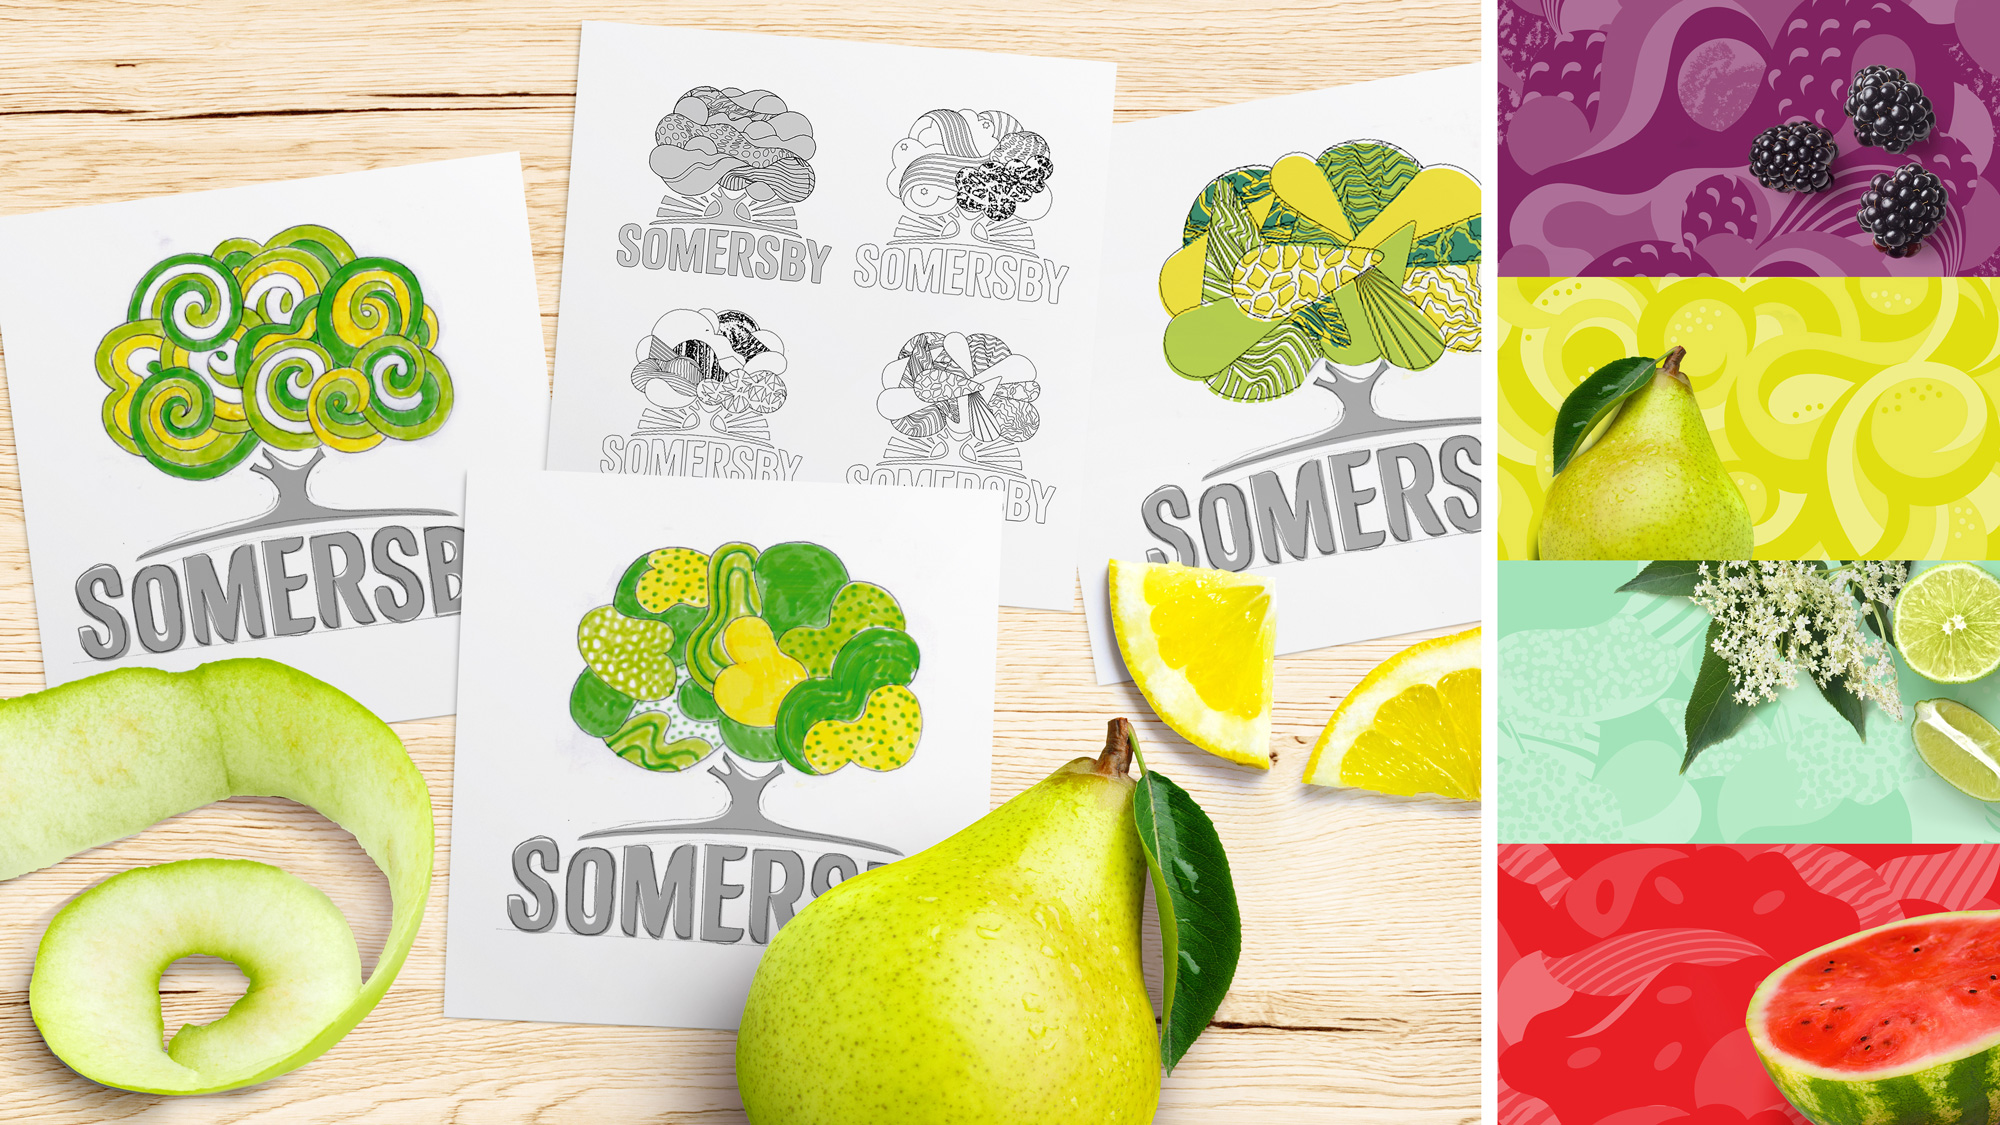 New Logo and Packaging for Somersby by Elmwood